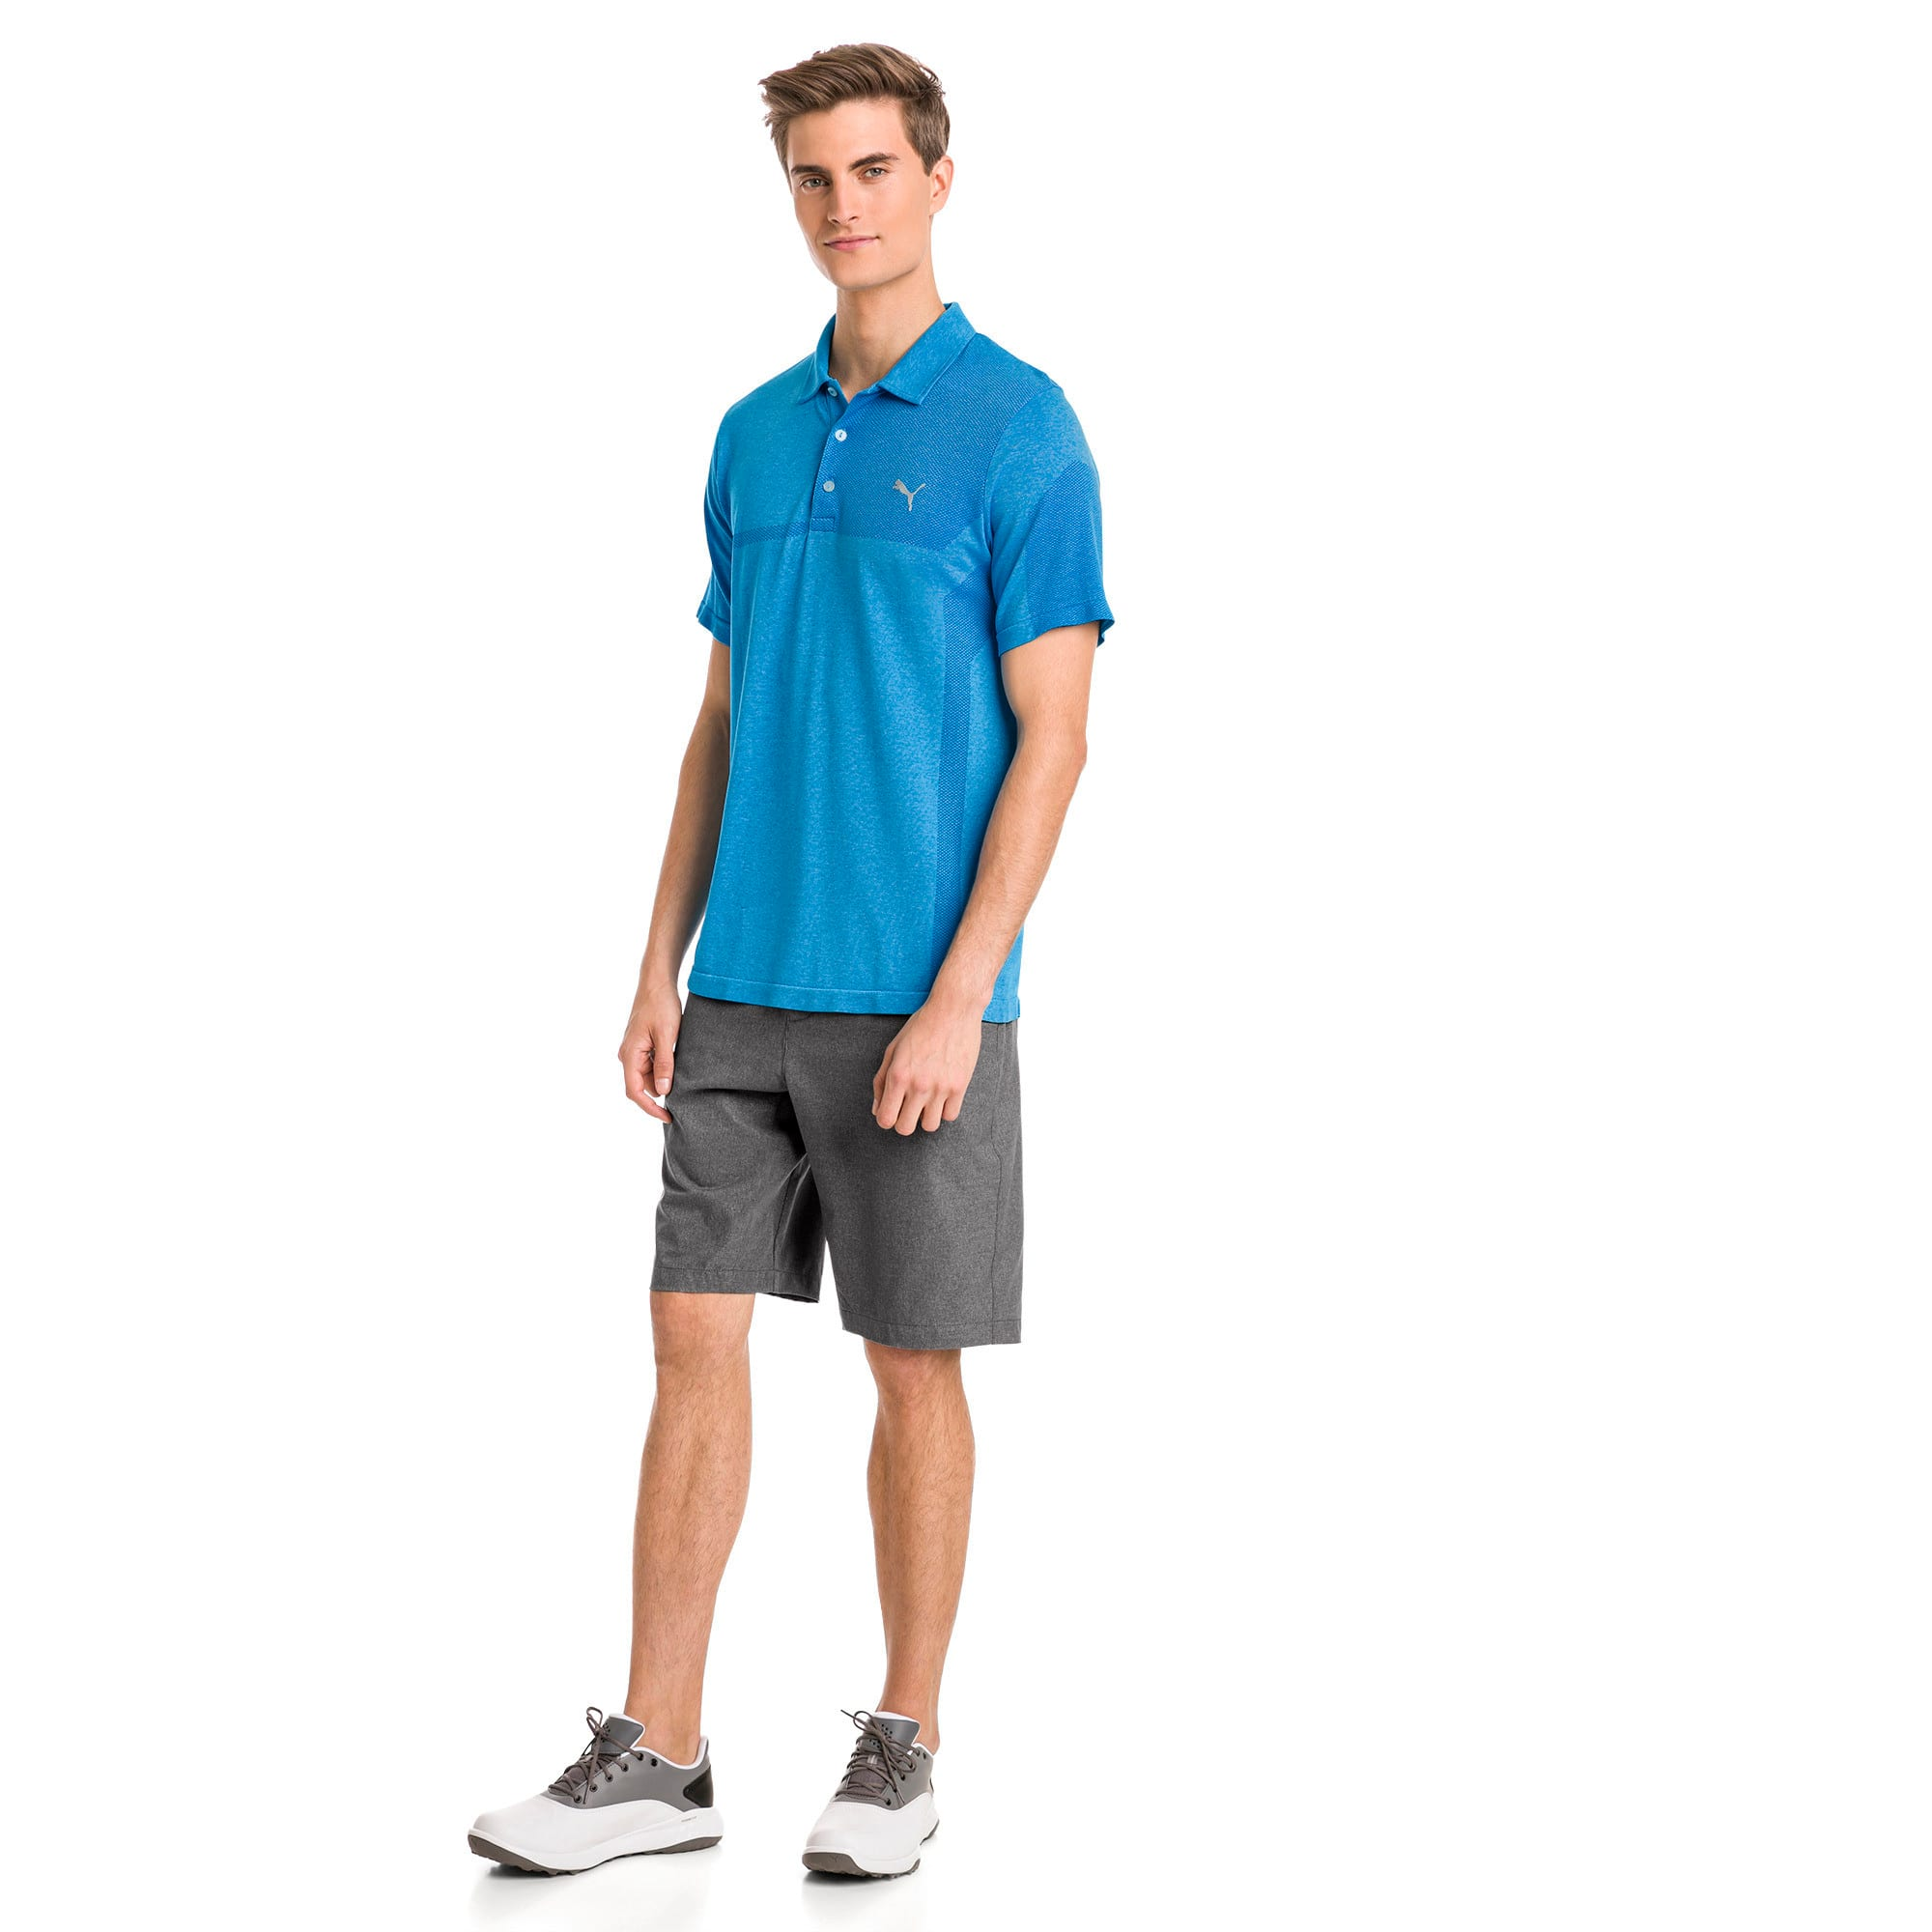 Thumbnail 3 of evoKNIT Breakers Herren Golf Polo, Bleu Azur Heather, medium